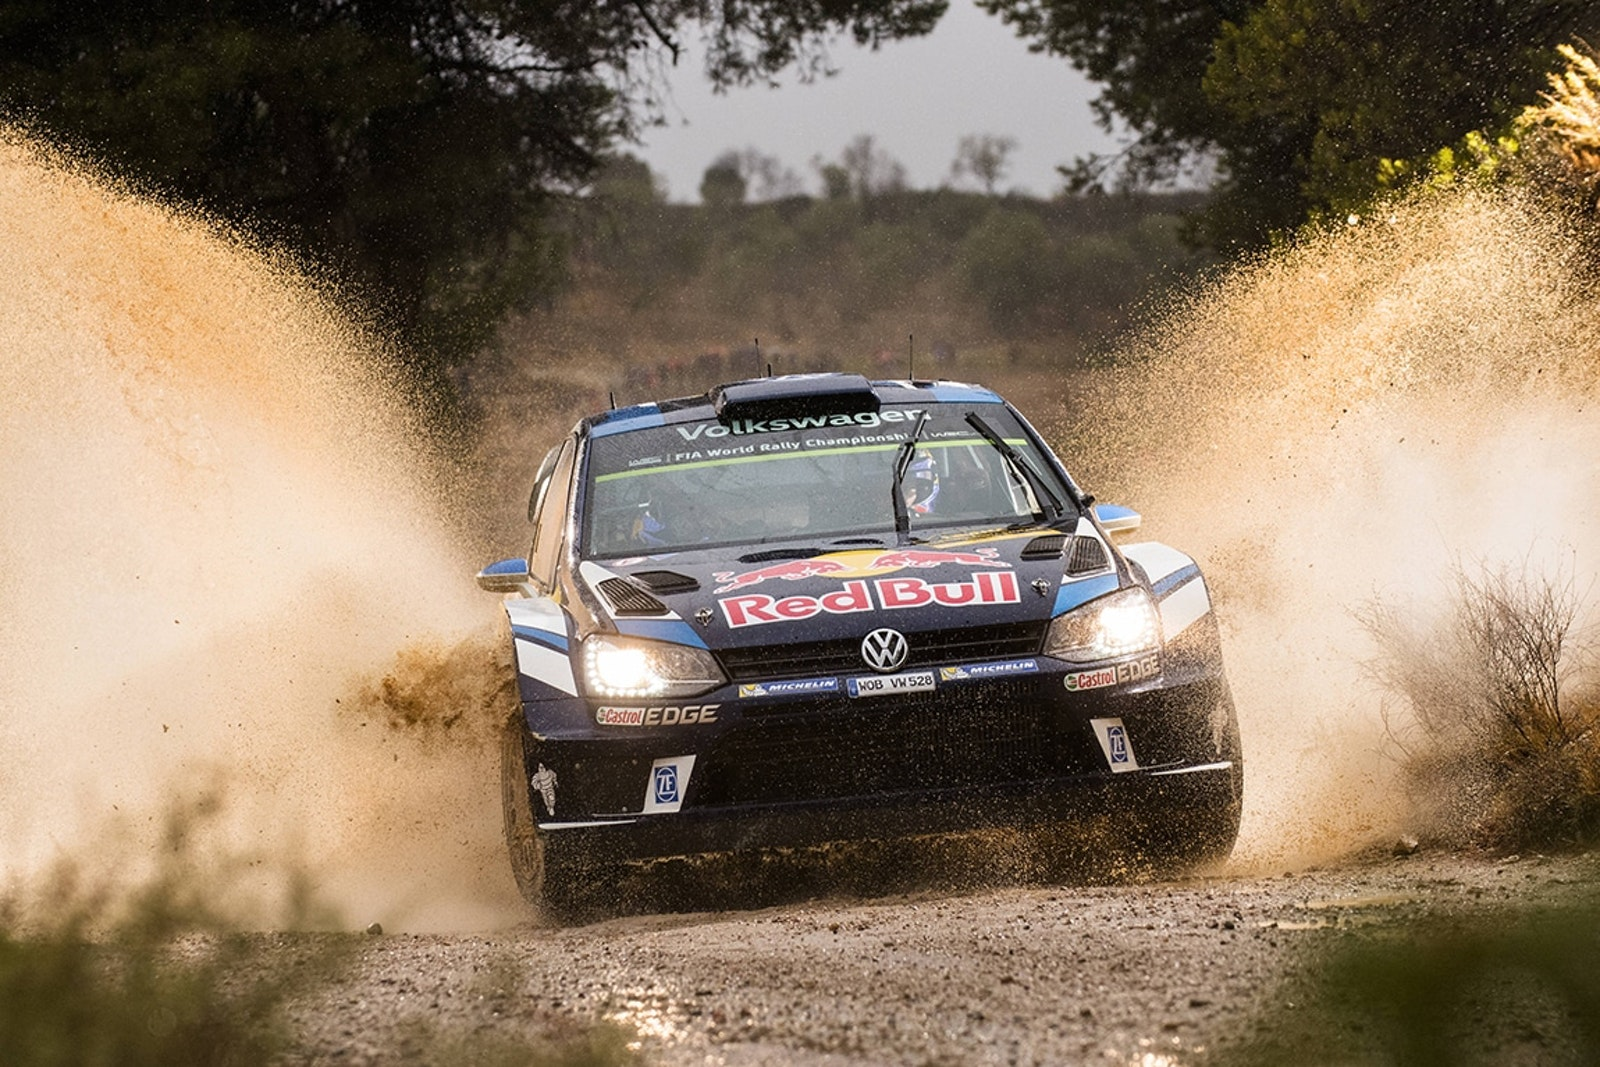 Sebastien Ogier (FRA) performs during FIA World Rally Championship 2016 Spain in Salou , Spain  on 14 October 2016 // Jaanus Ree/Red Bull Content Pool // P-20161014-00868 // Usage for editorial use only // Please go to www.redbullcontentpool.com for further information. //